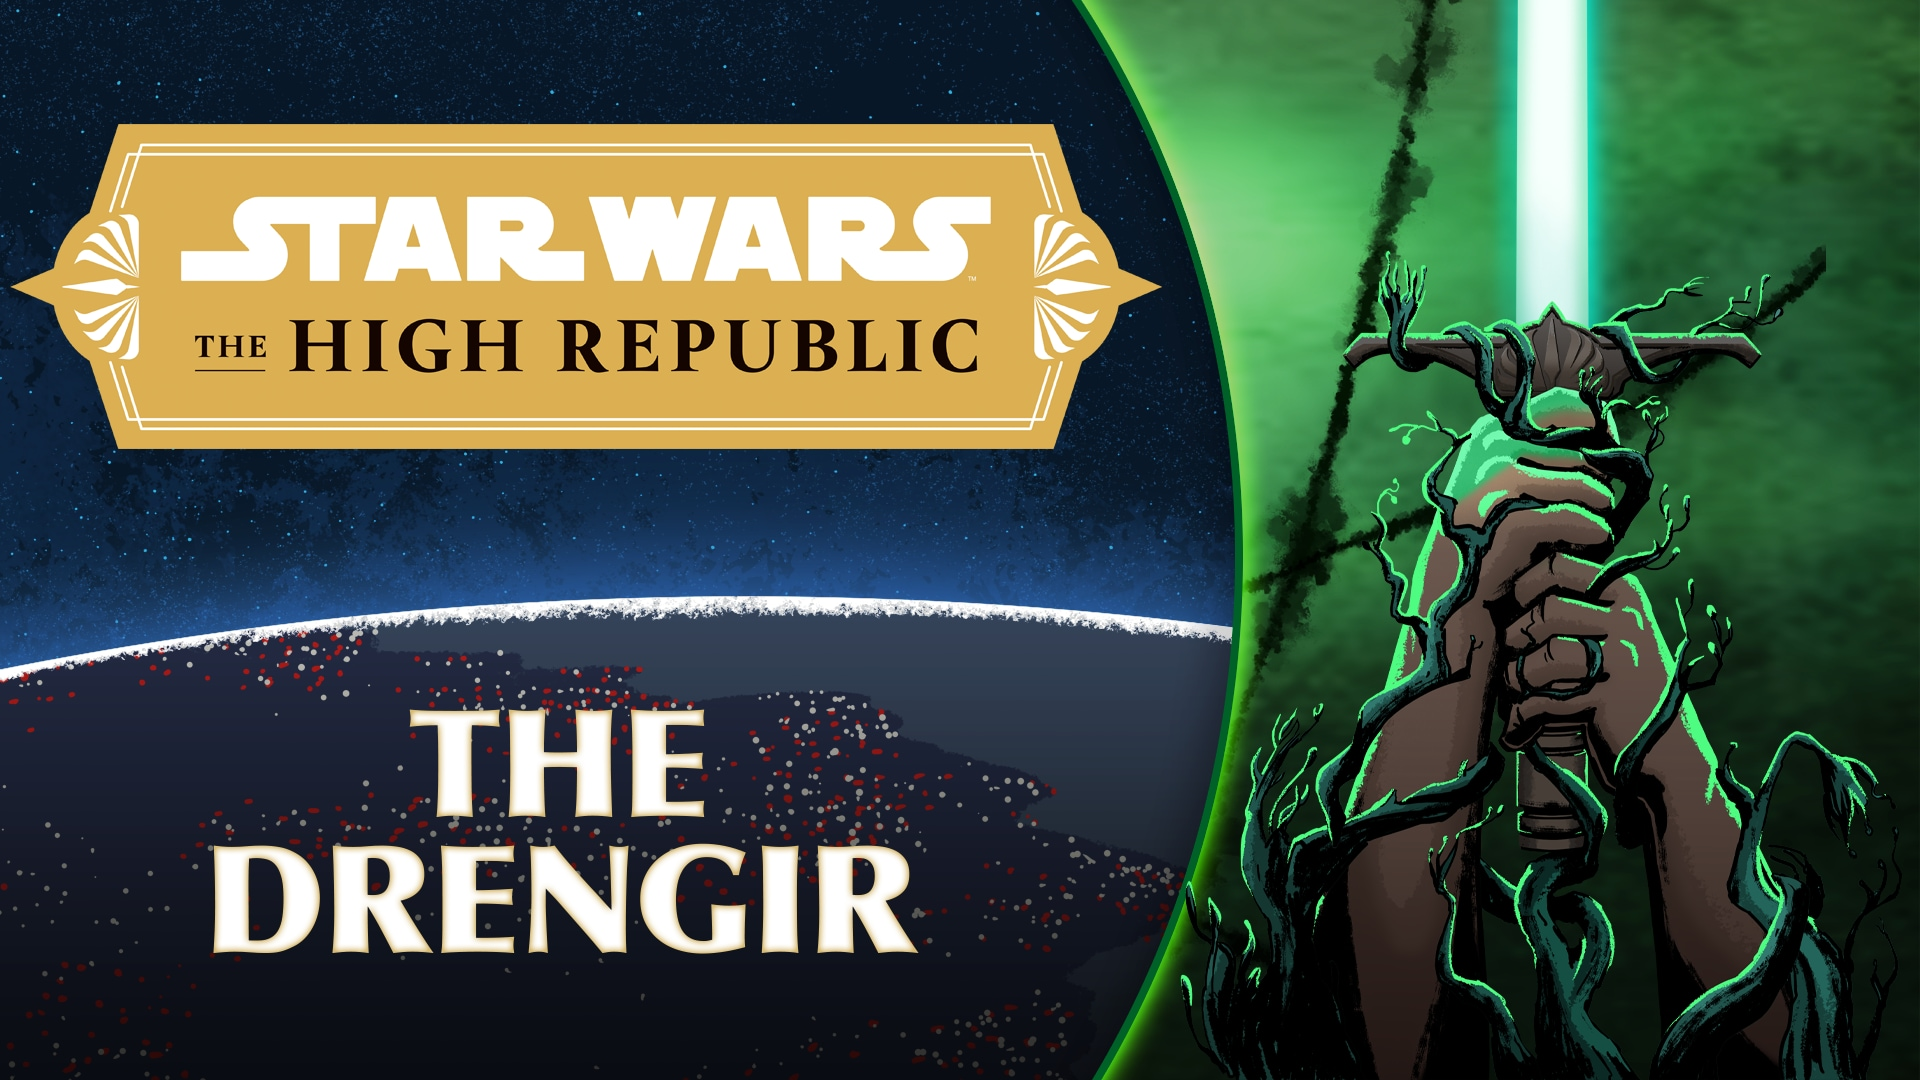 The Drengir | Characters of Star Wars: The High Republic